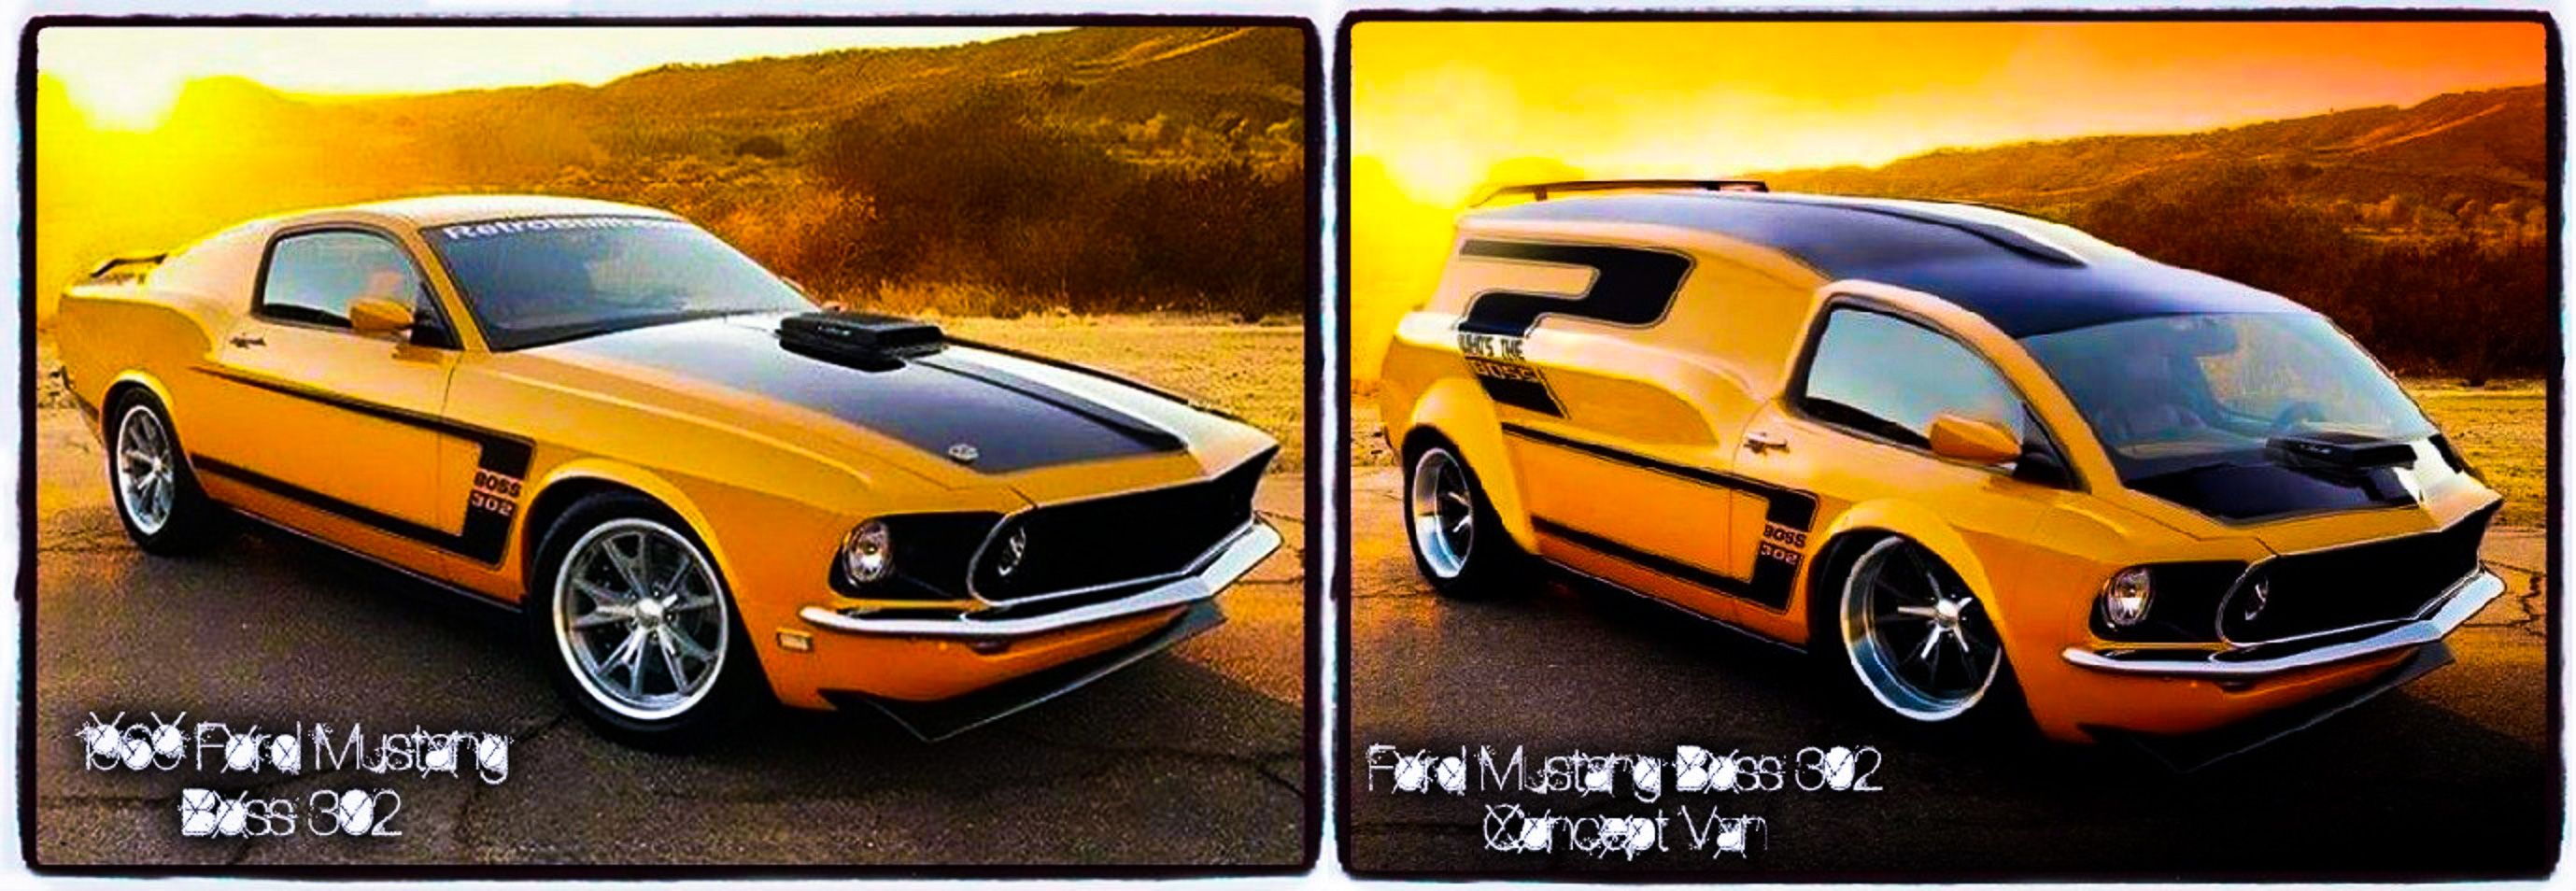 On the left a 1969 ford mustang boss 302 and on the right a